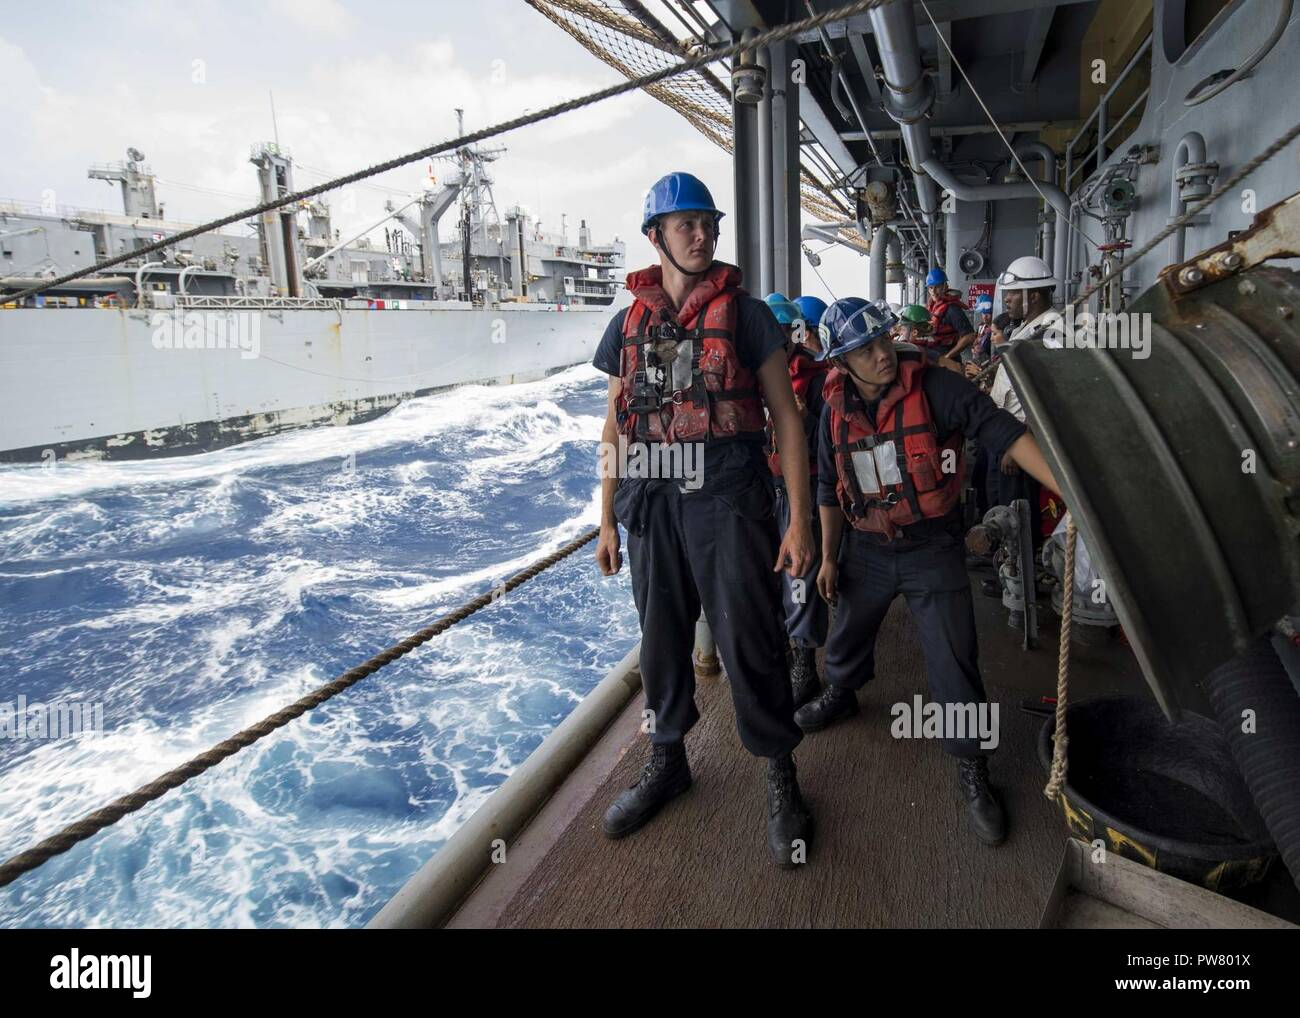 Replenishment Caribbean: To Take On Fuel Stock Photos & To Take On Fuel Stock